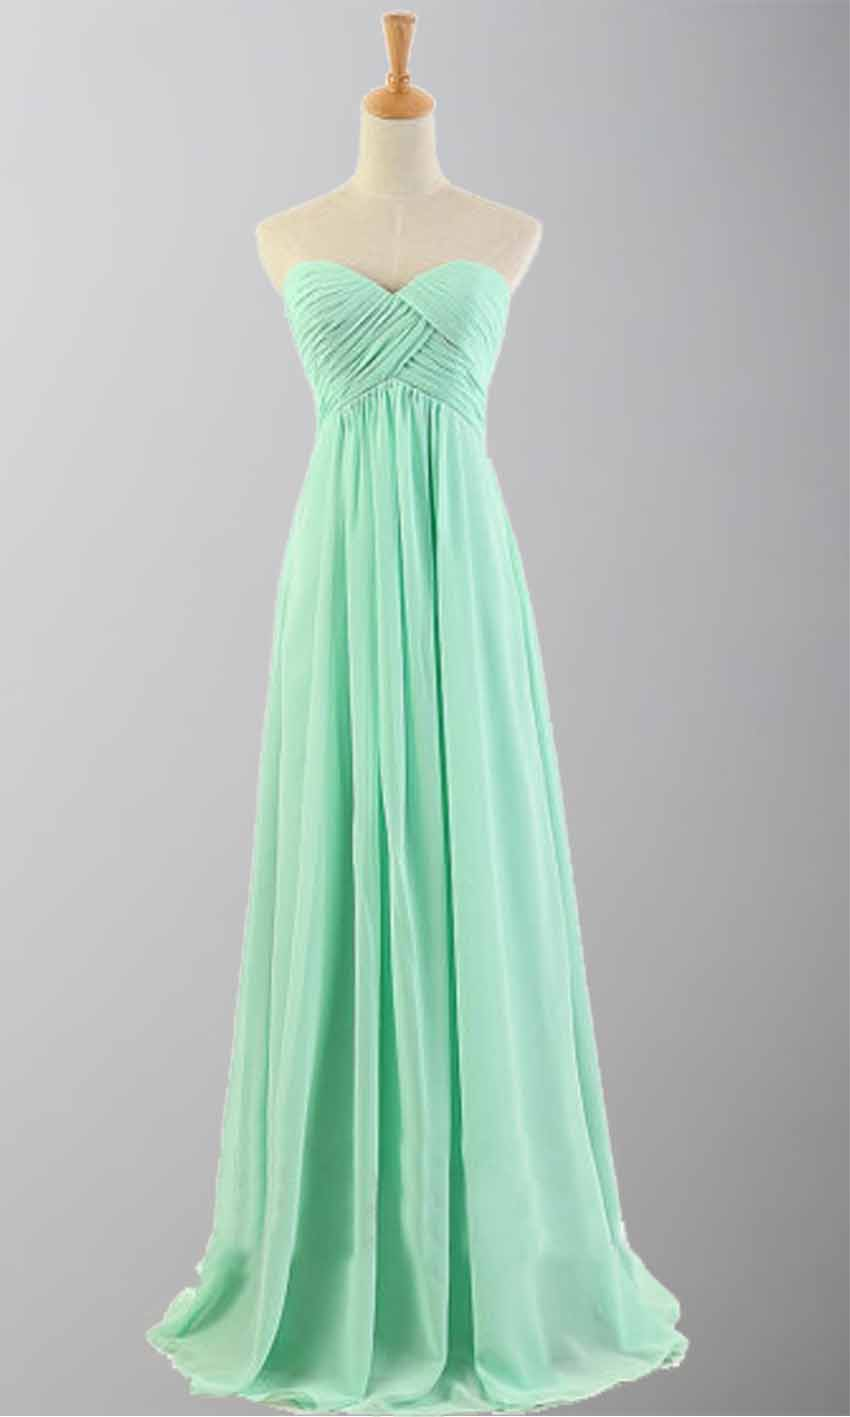 Mint Green Cross Pleated Long Bridesmaid Dresses KSP171 [KSP171 ...